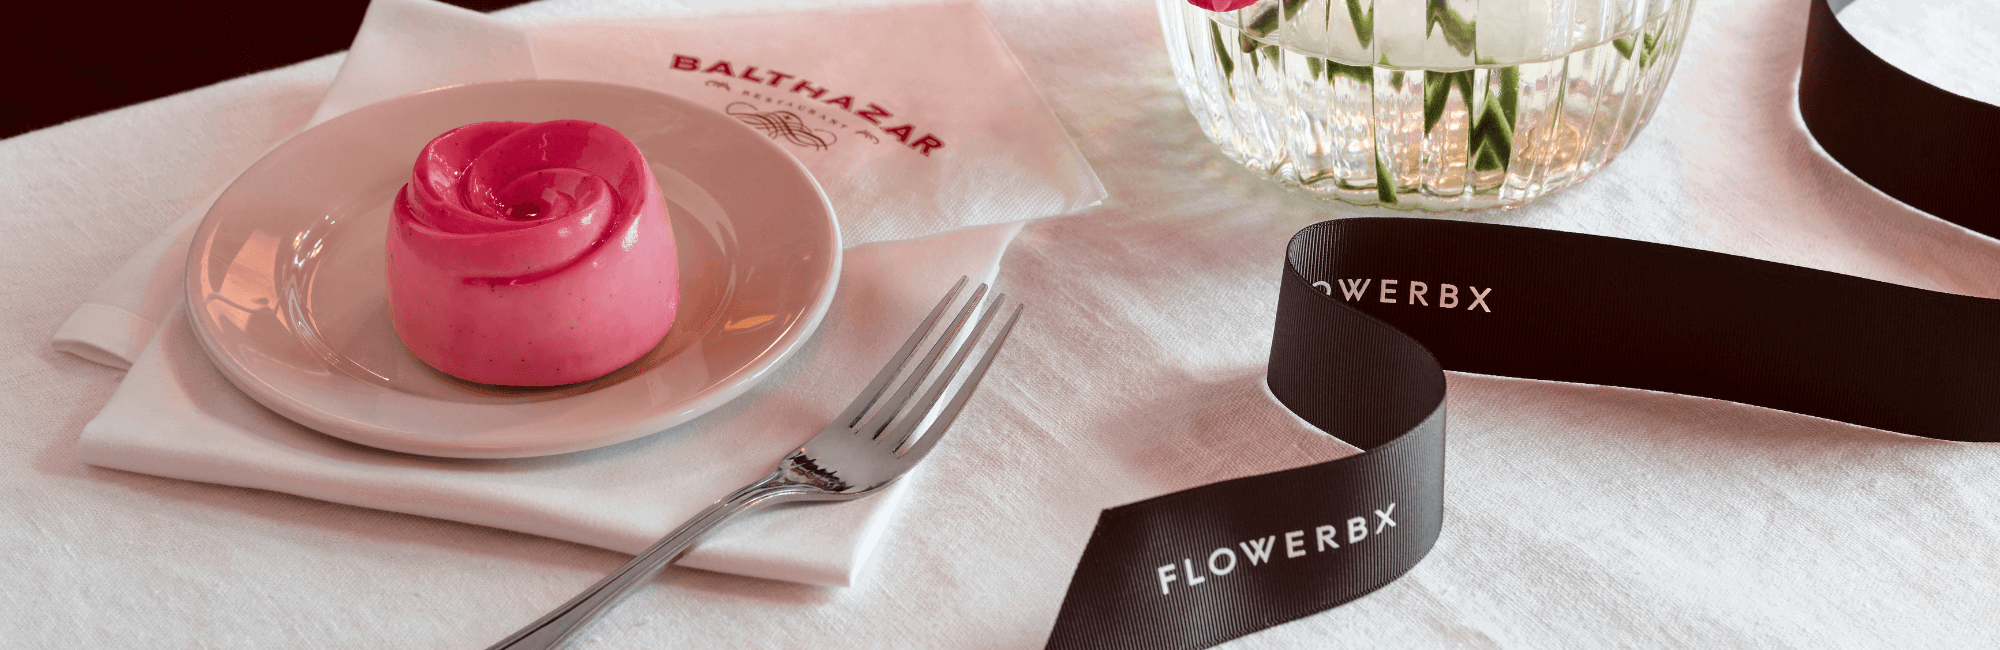 The Flowerbx Afternoon Tea at Balthazar restaurant in Covent Garden